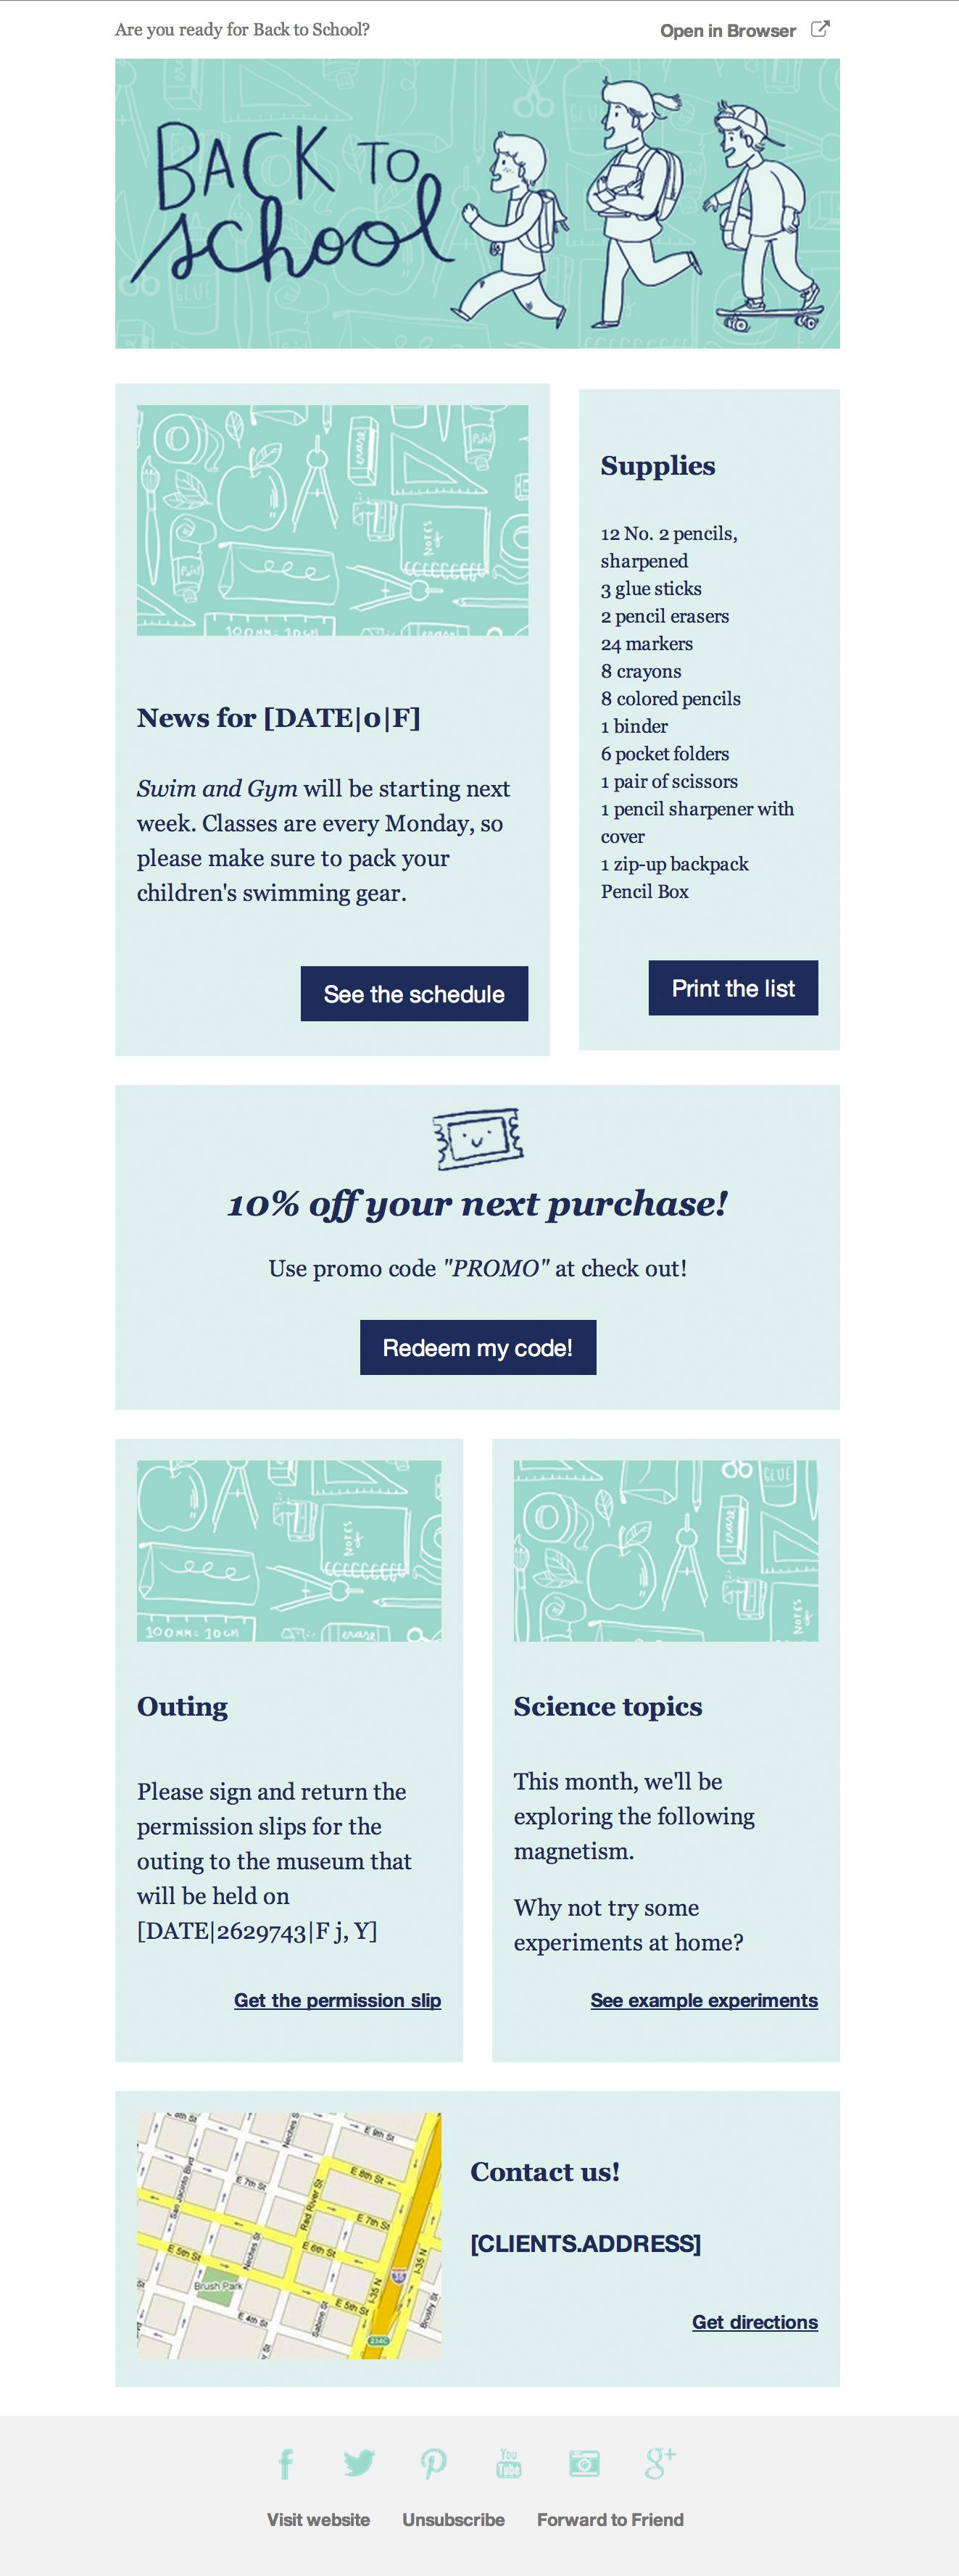 Preview Back To School Newsletter Template  Cakemail  Email Ui